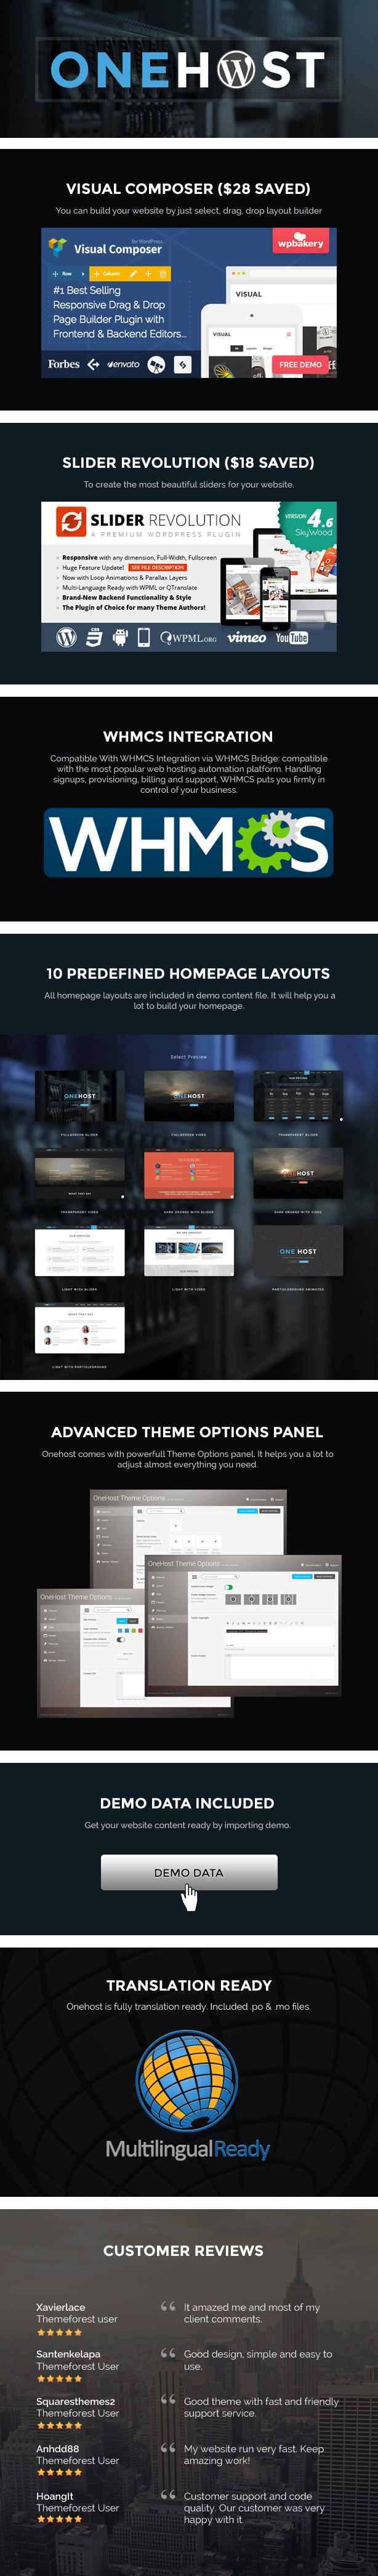 onehost features - Onehost - One Page WordPress Hosting Theme